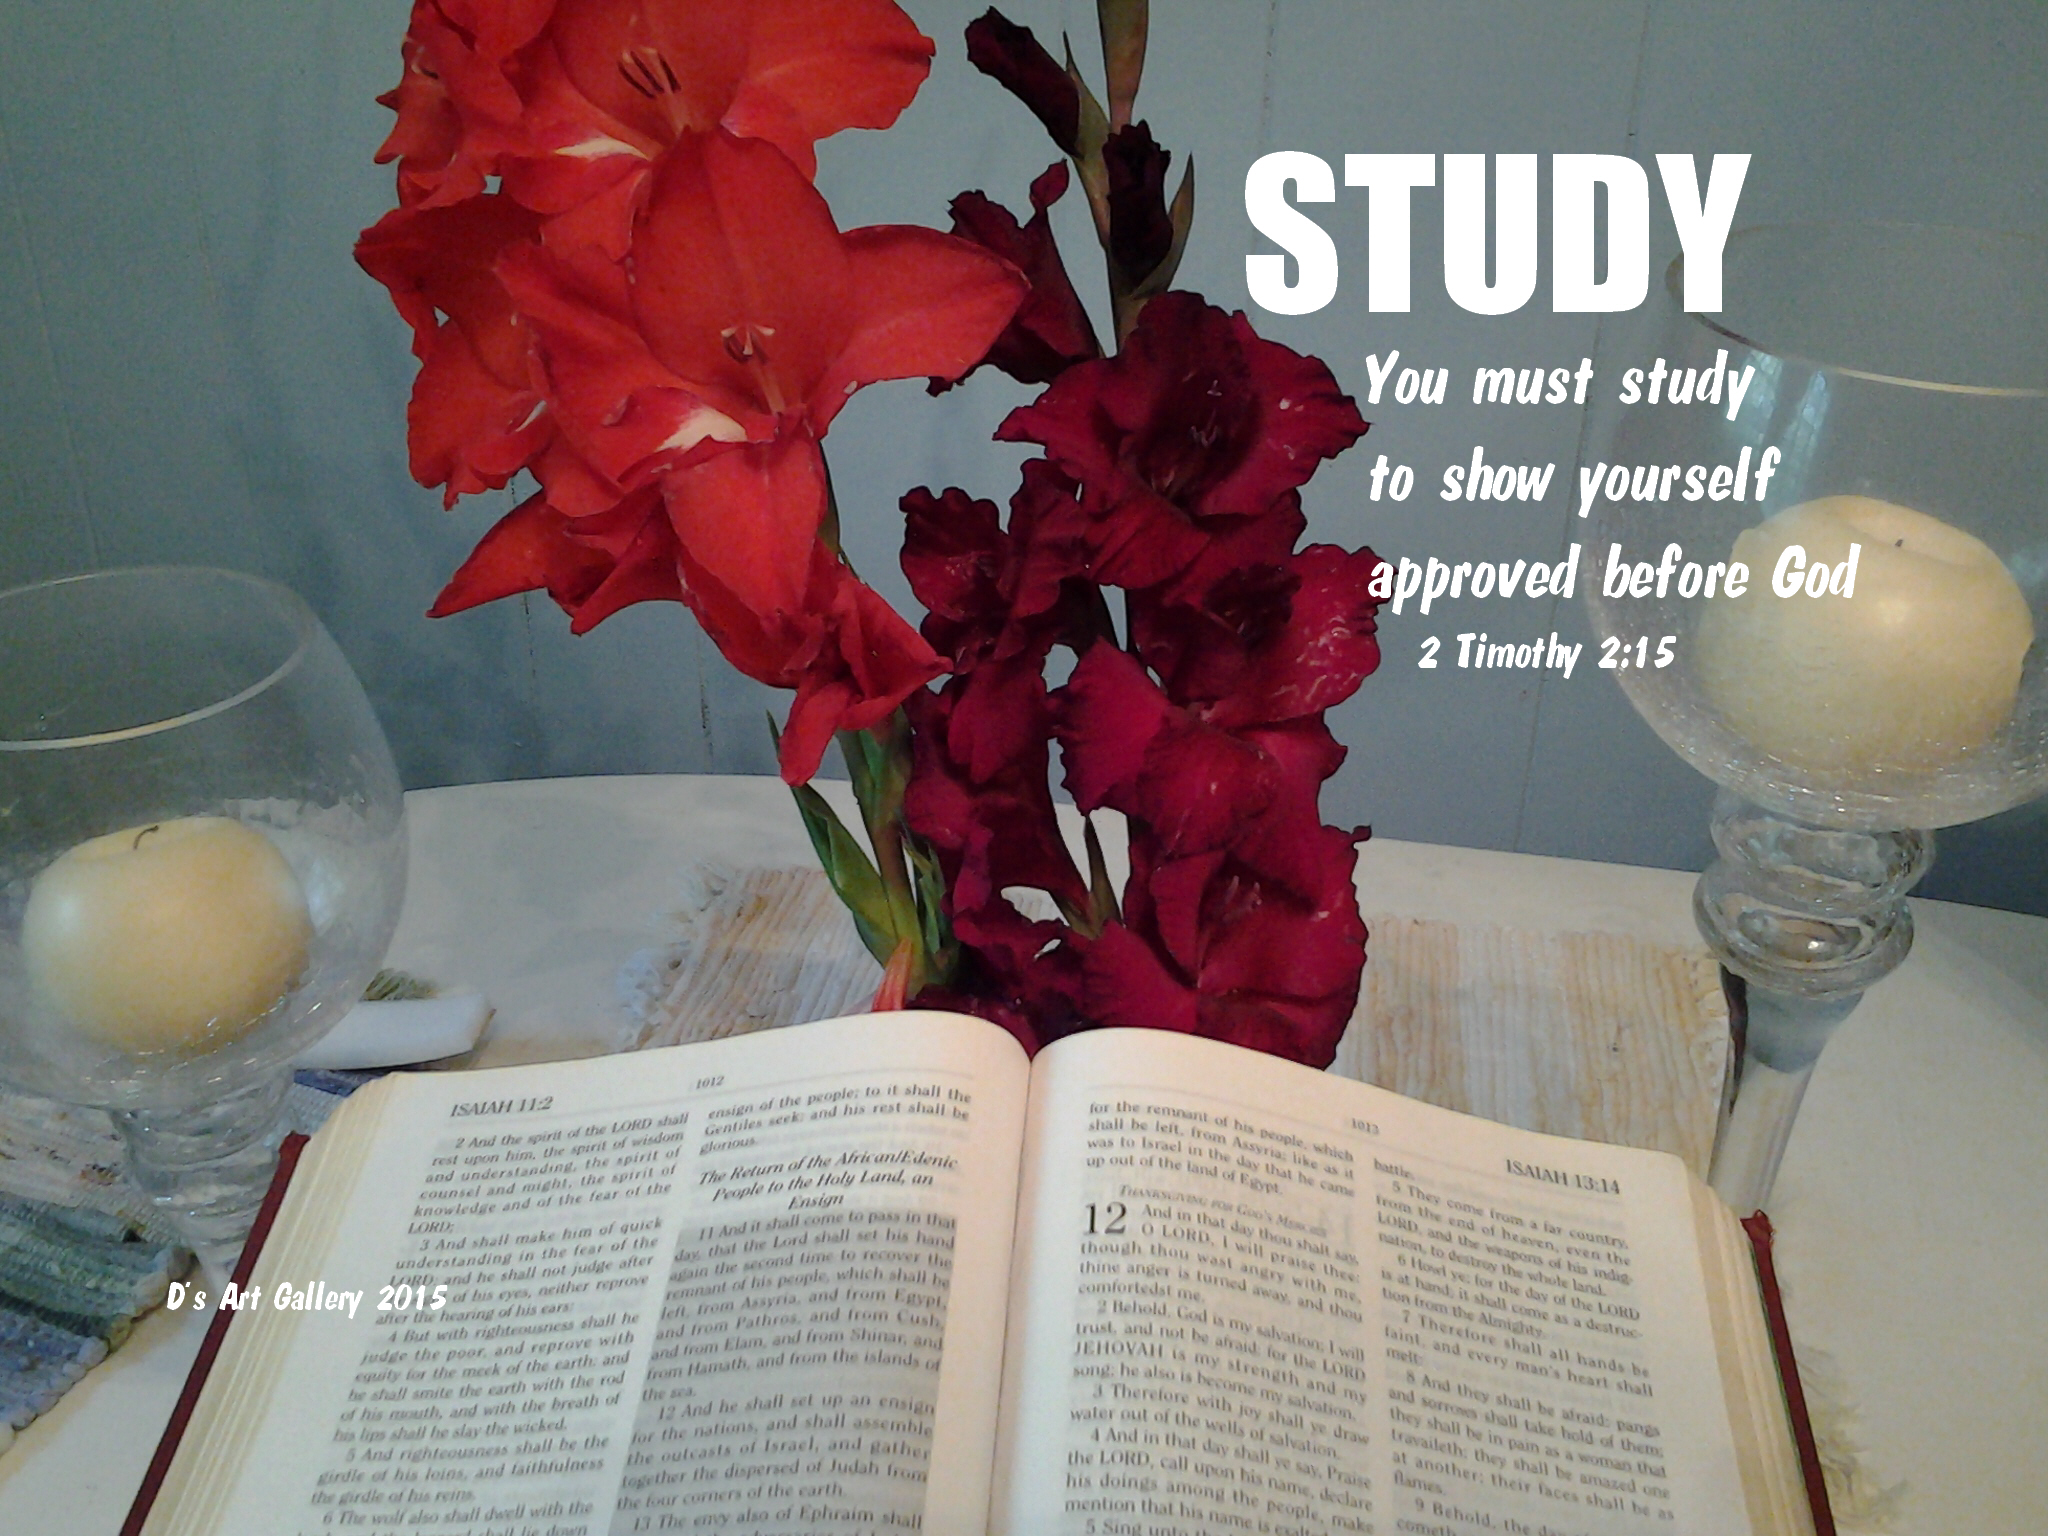 CALLED BY THE WORD TO STUDY (Photo by Pastor Davis)